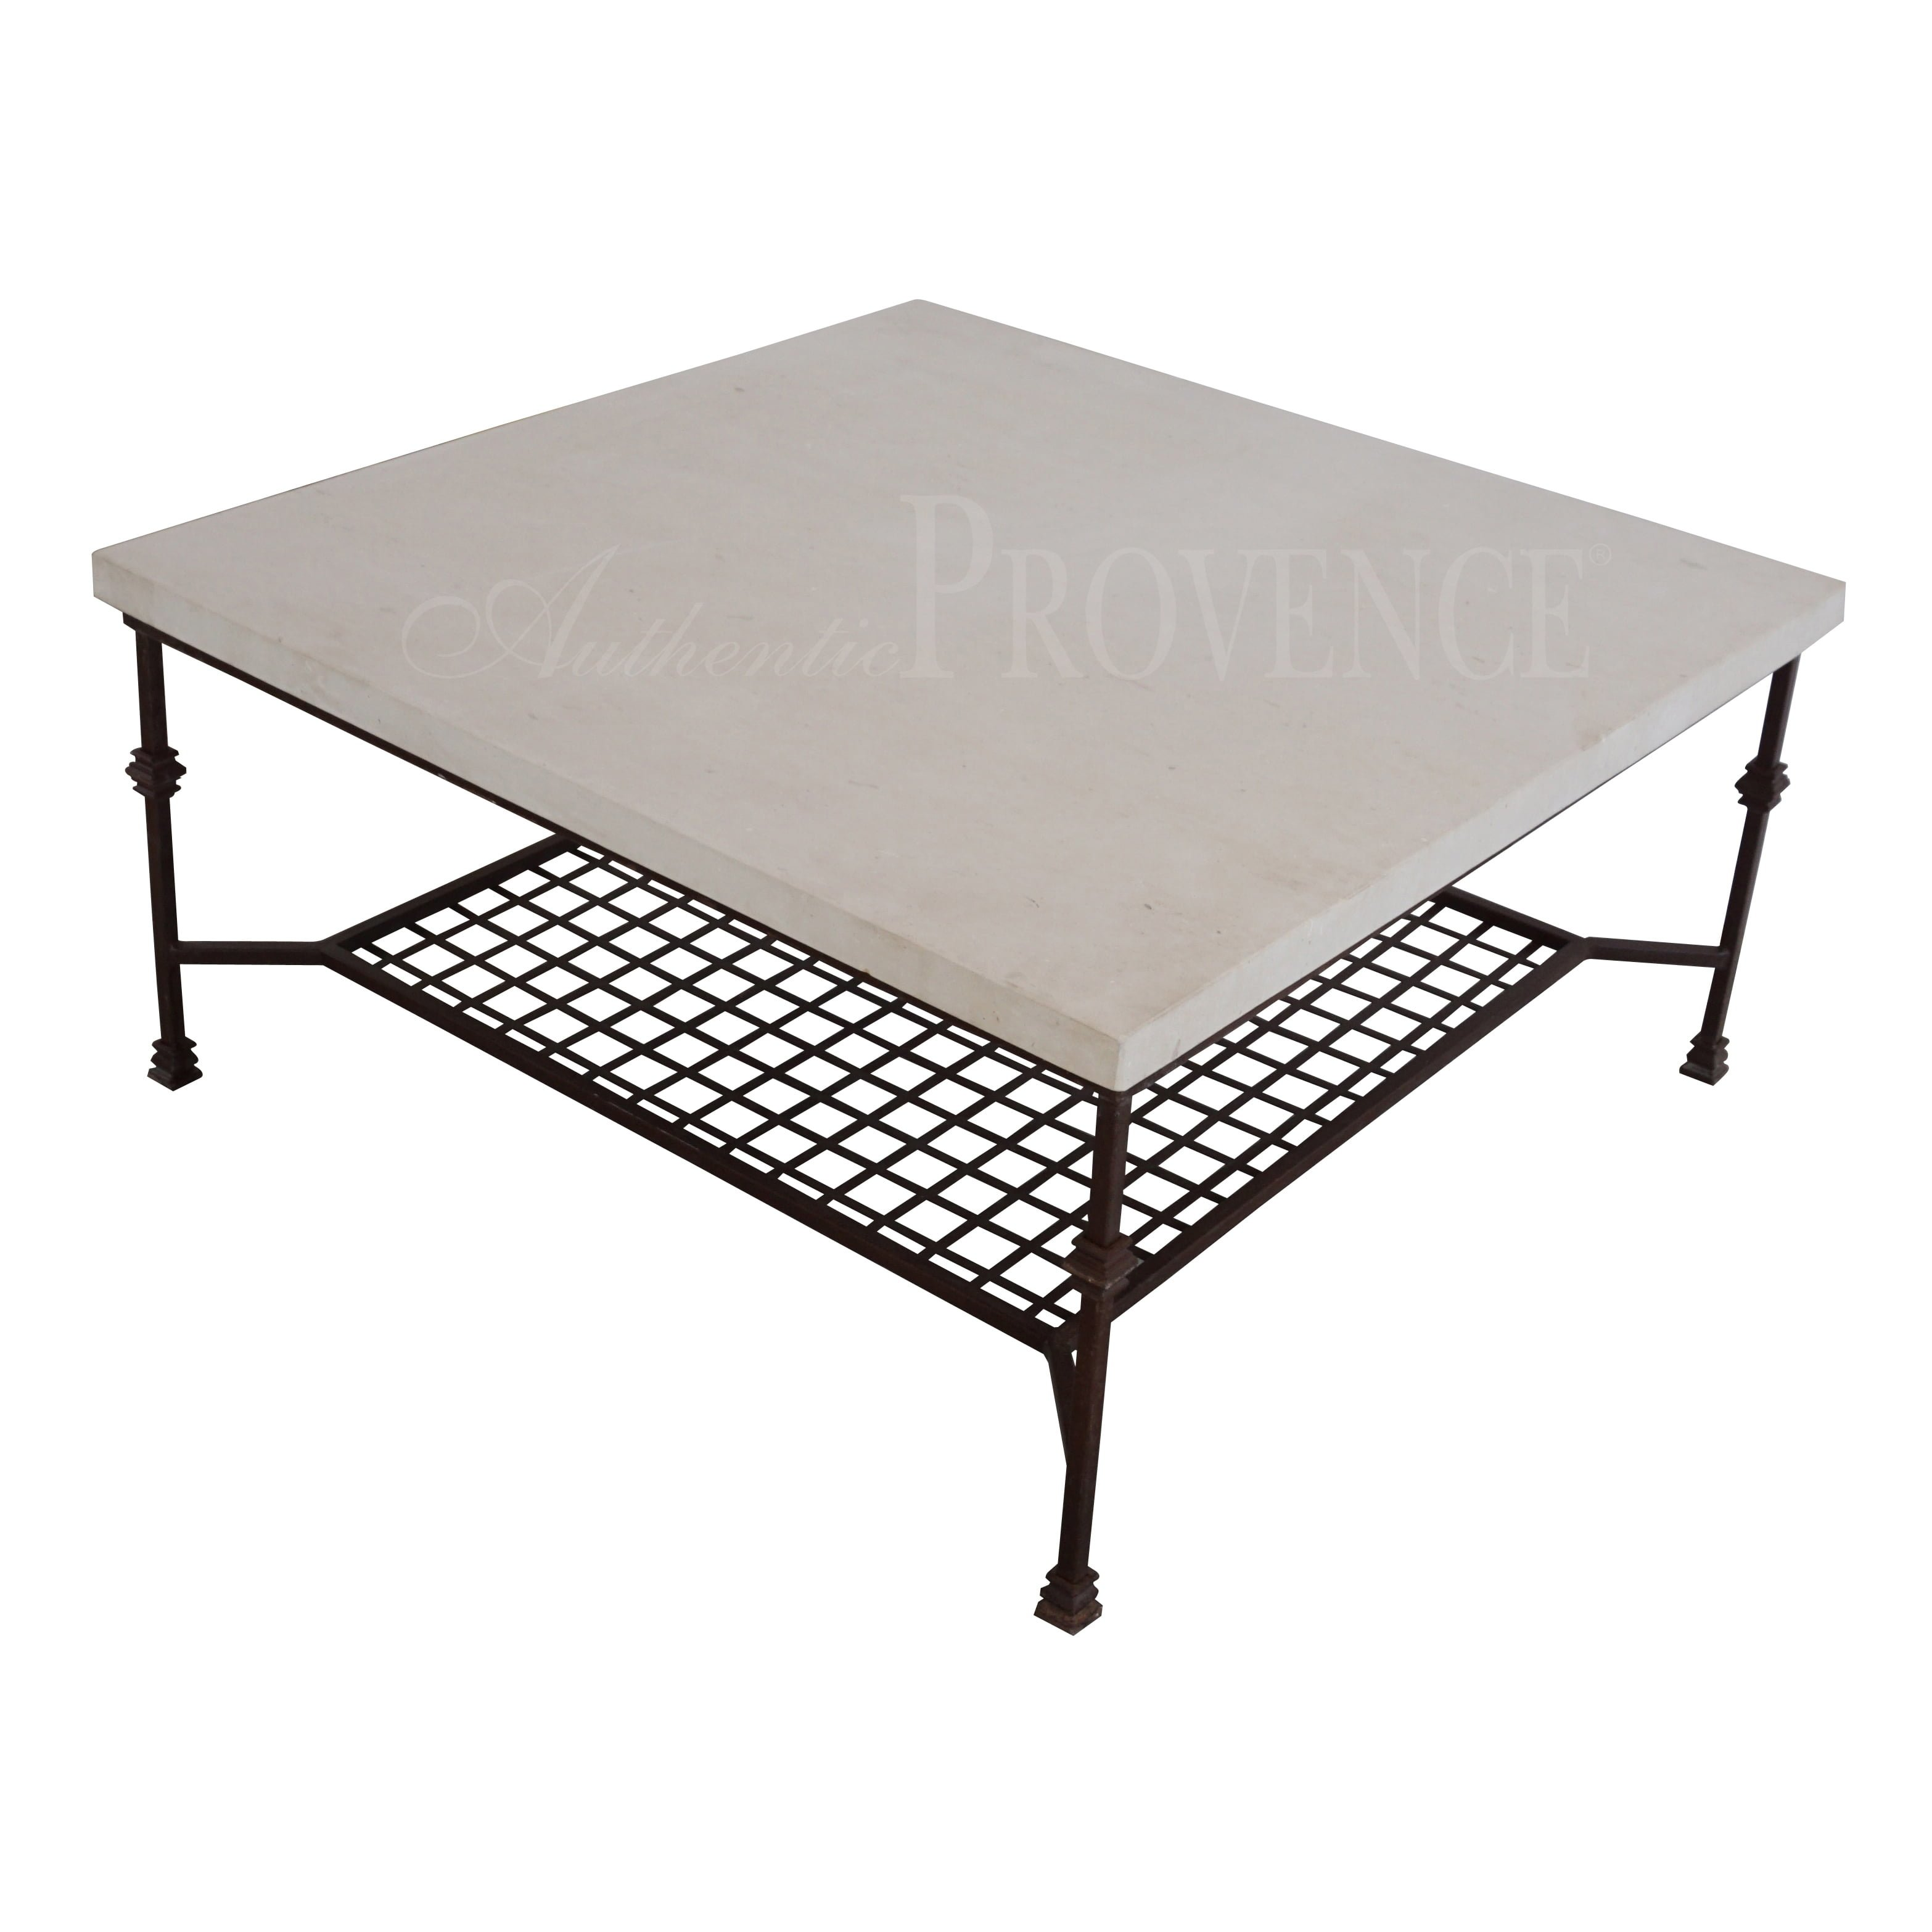 A coffee table with square French limestone top on an iron base with grid